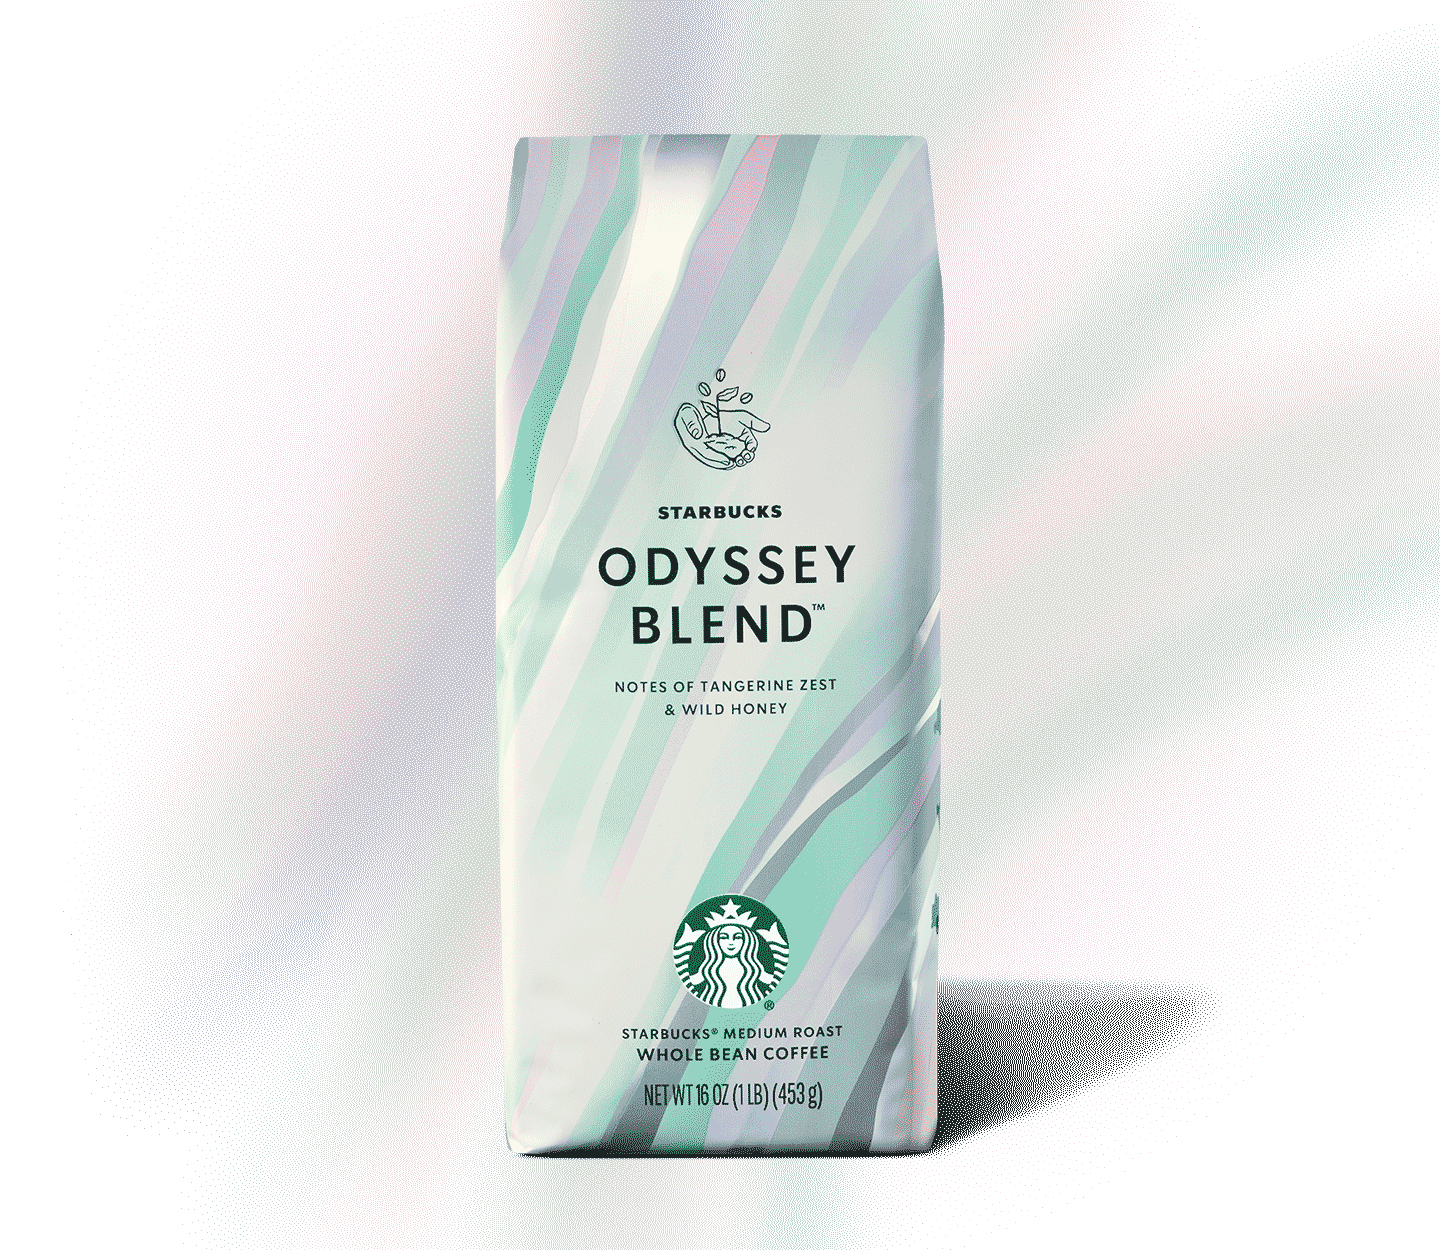 A shimmery bag of coffee standing upright